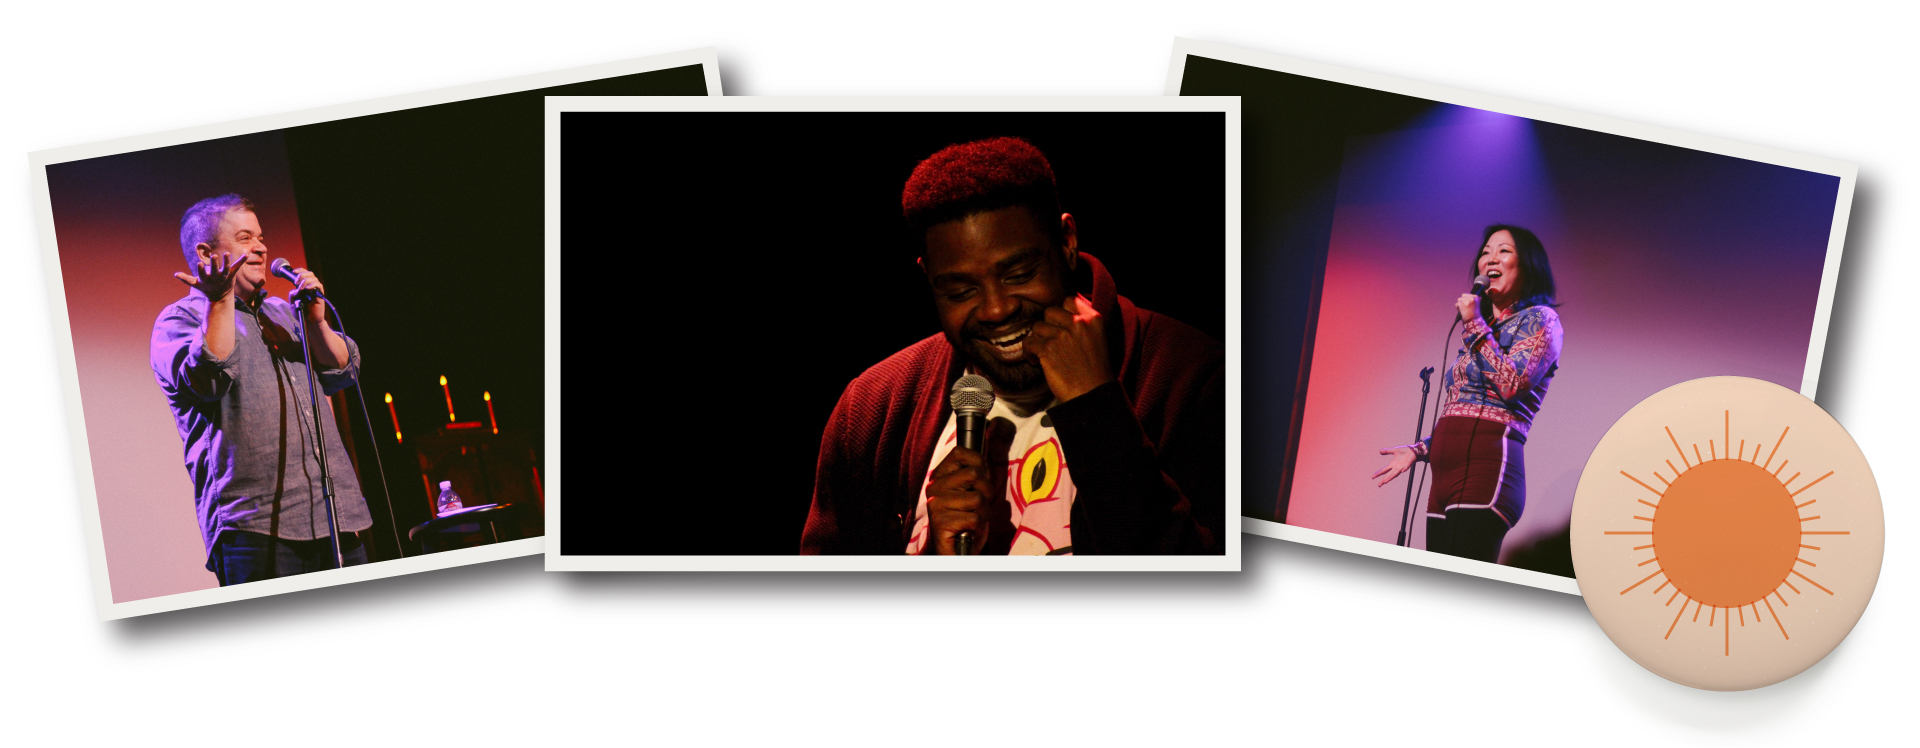 From Left to Right: Patton Oswalt, Ron Funches, Margaret Cho.